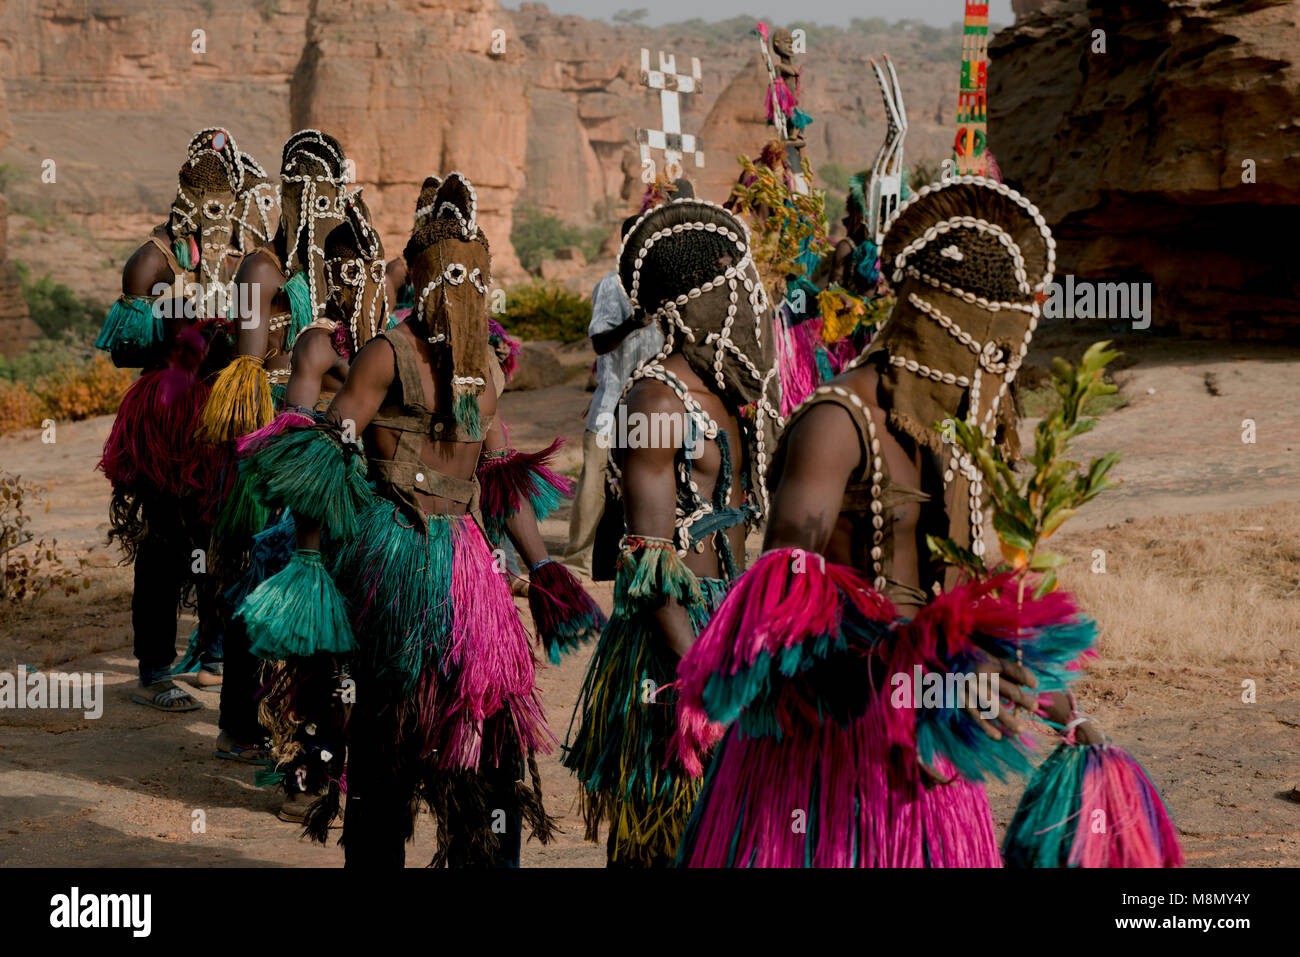 A group of Dogon men performing a ritual tribal masked dance ceremony. Dogon country, Mali, West Africa. - Stock Image